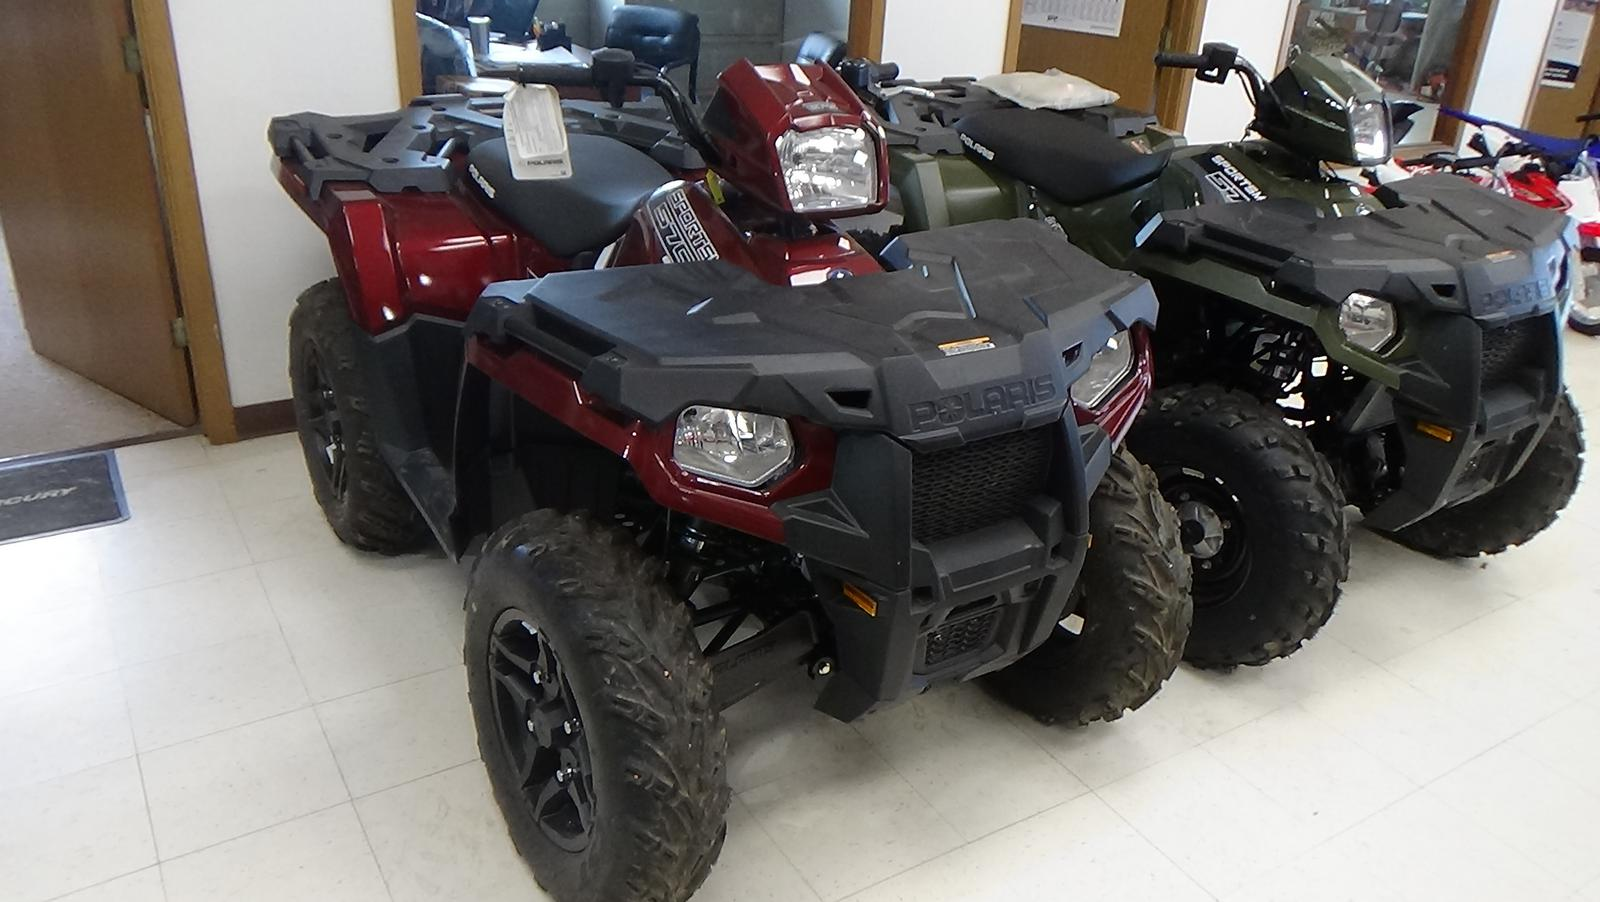 2019 polaris industries sportsman� 570 sp - crimson metallic